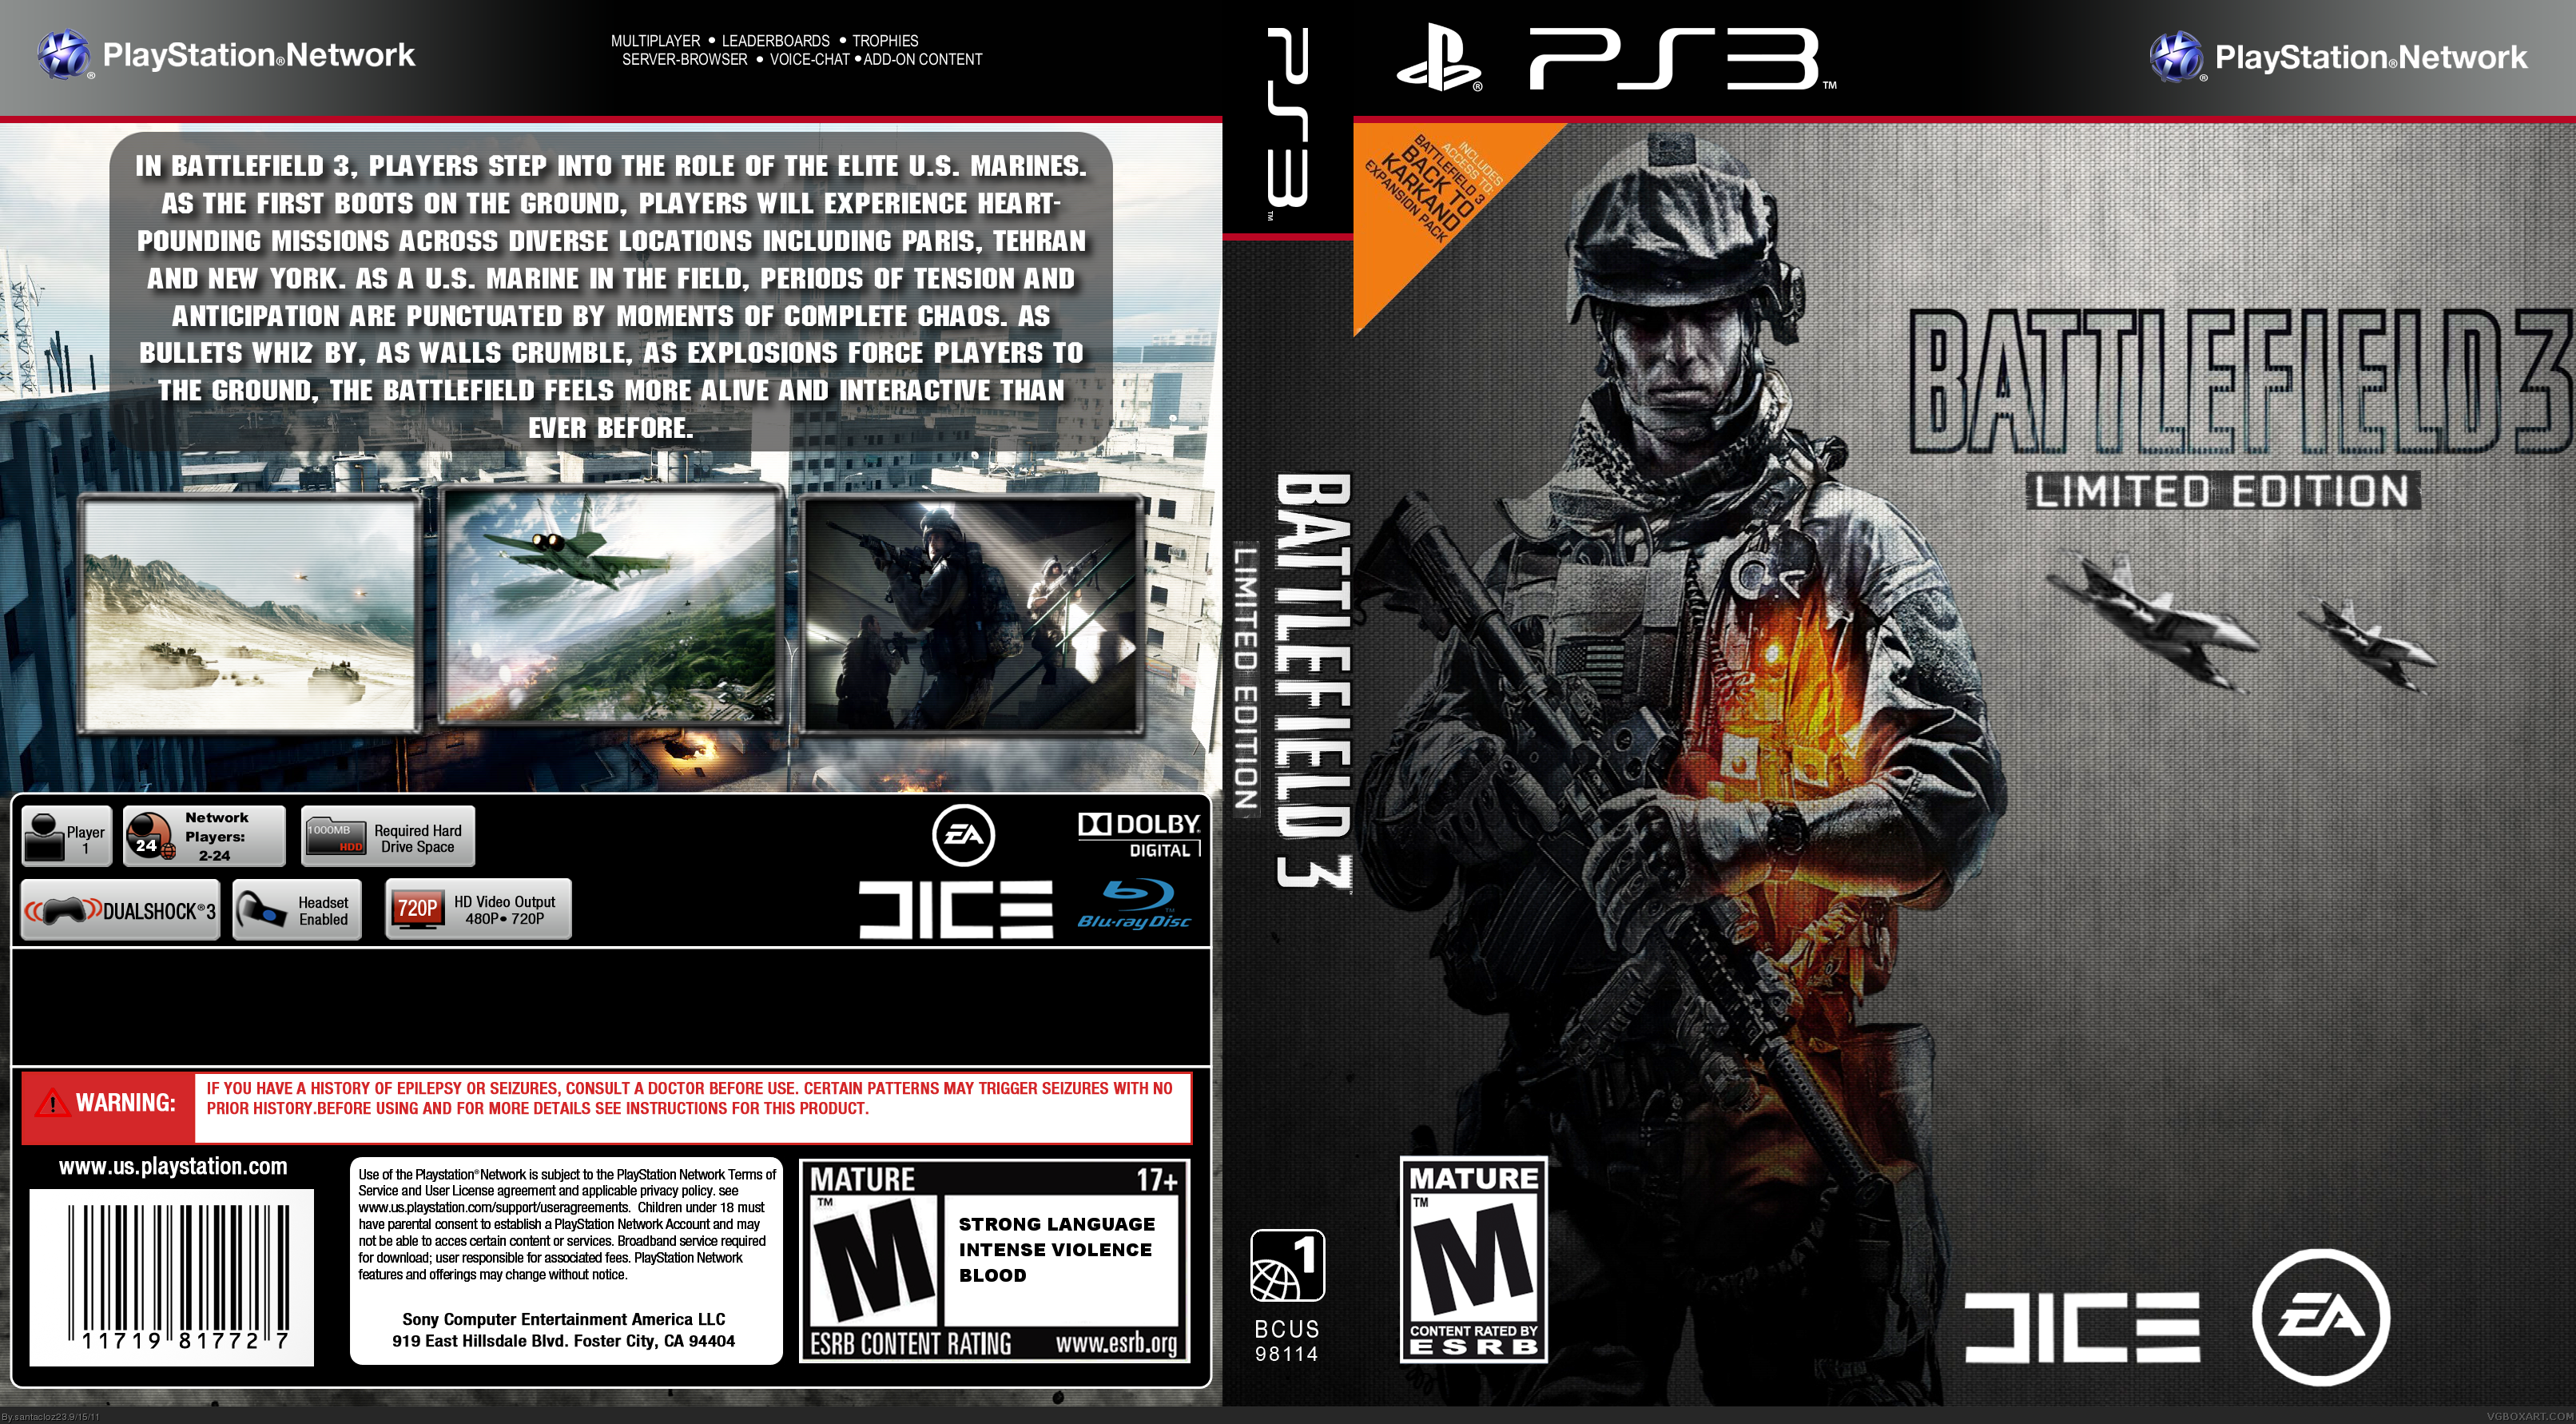 Battlefield 3 Limited Edition PlayStation 3 Box Art Cover ...